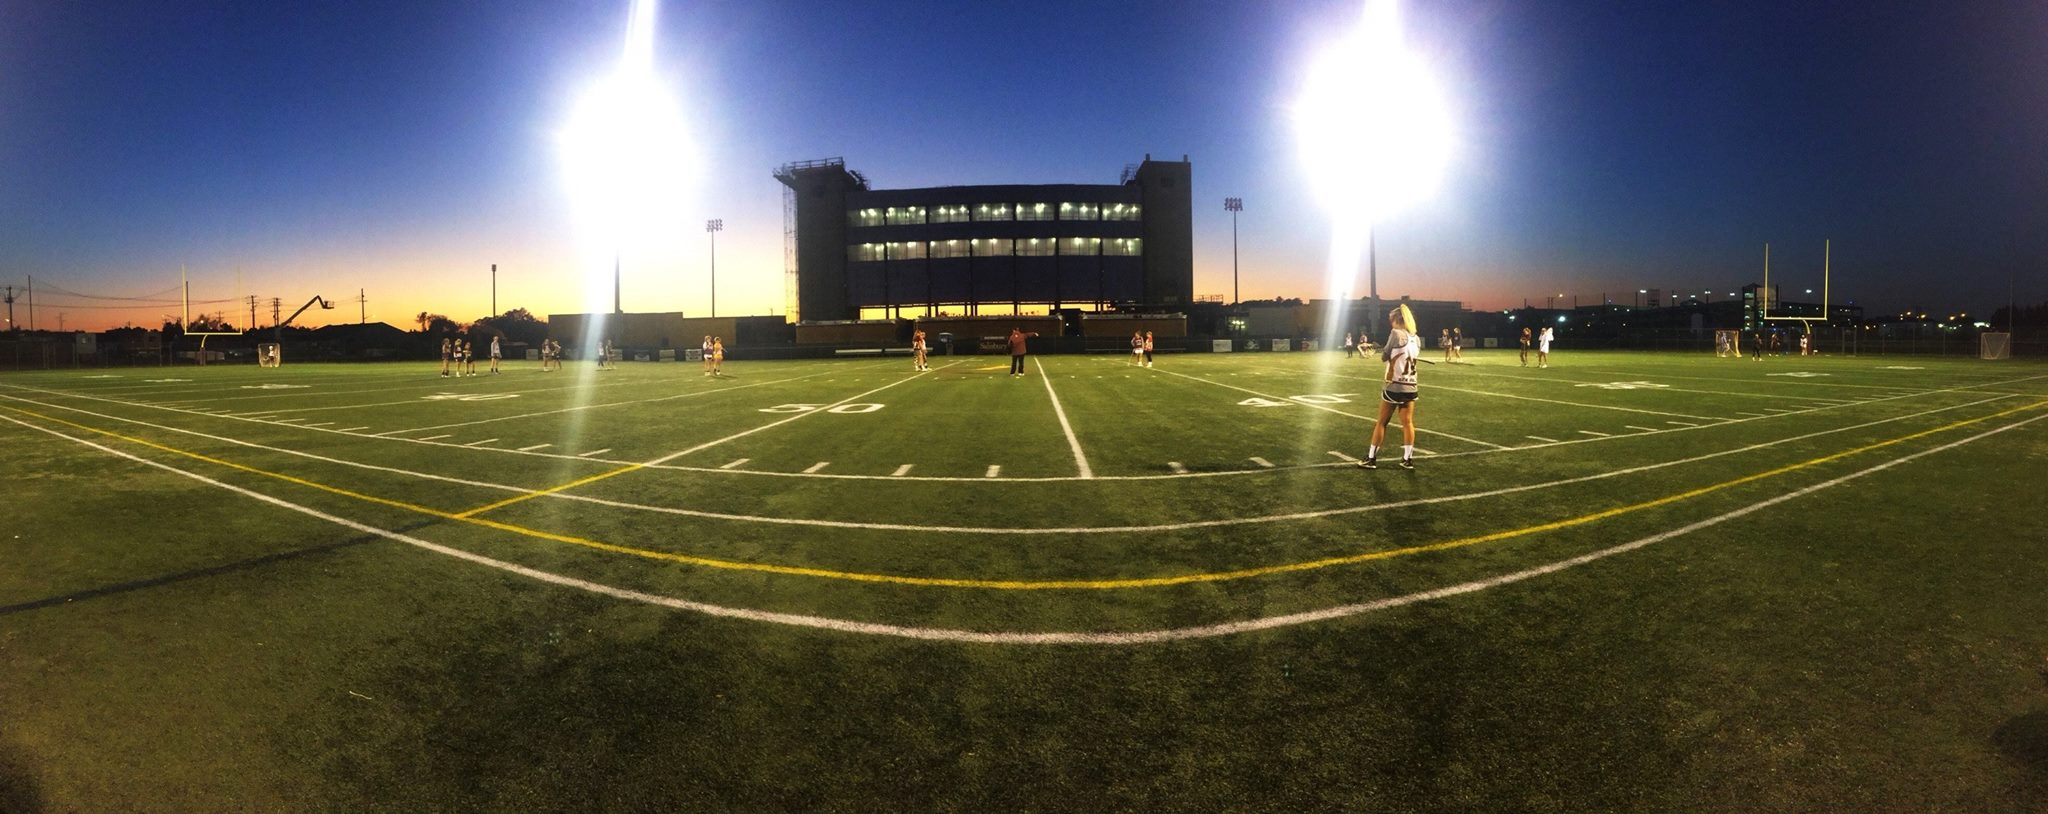 Salisbury University WLAX Enters 2016 Season as No. 9 Team in the Country